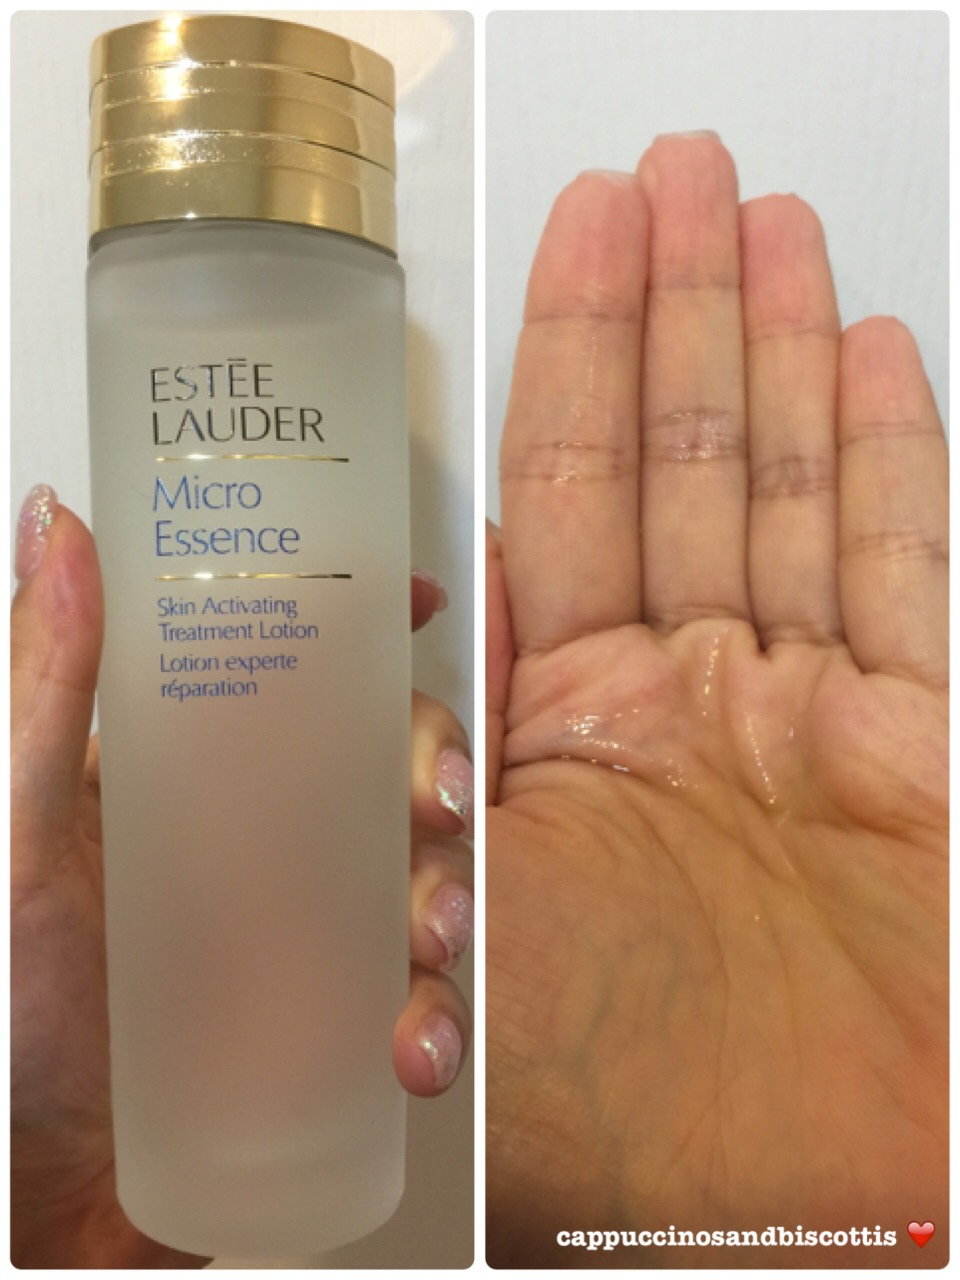 Estee Lauder Micro Essence Skin Activating Lotion Review Cappuccinos And Biscottis